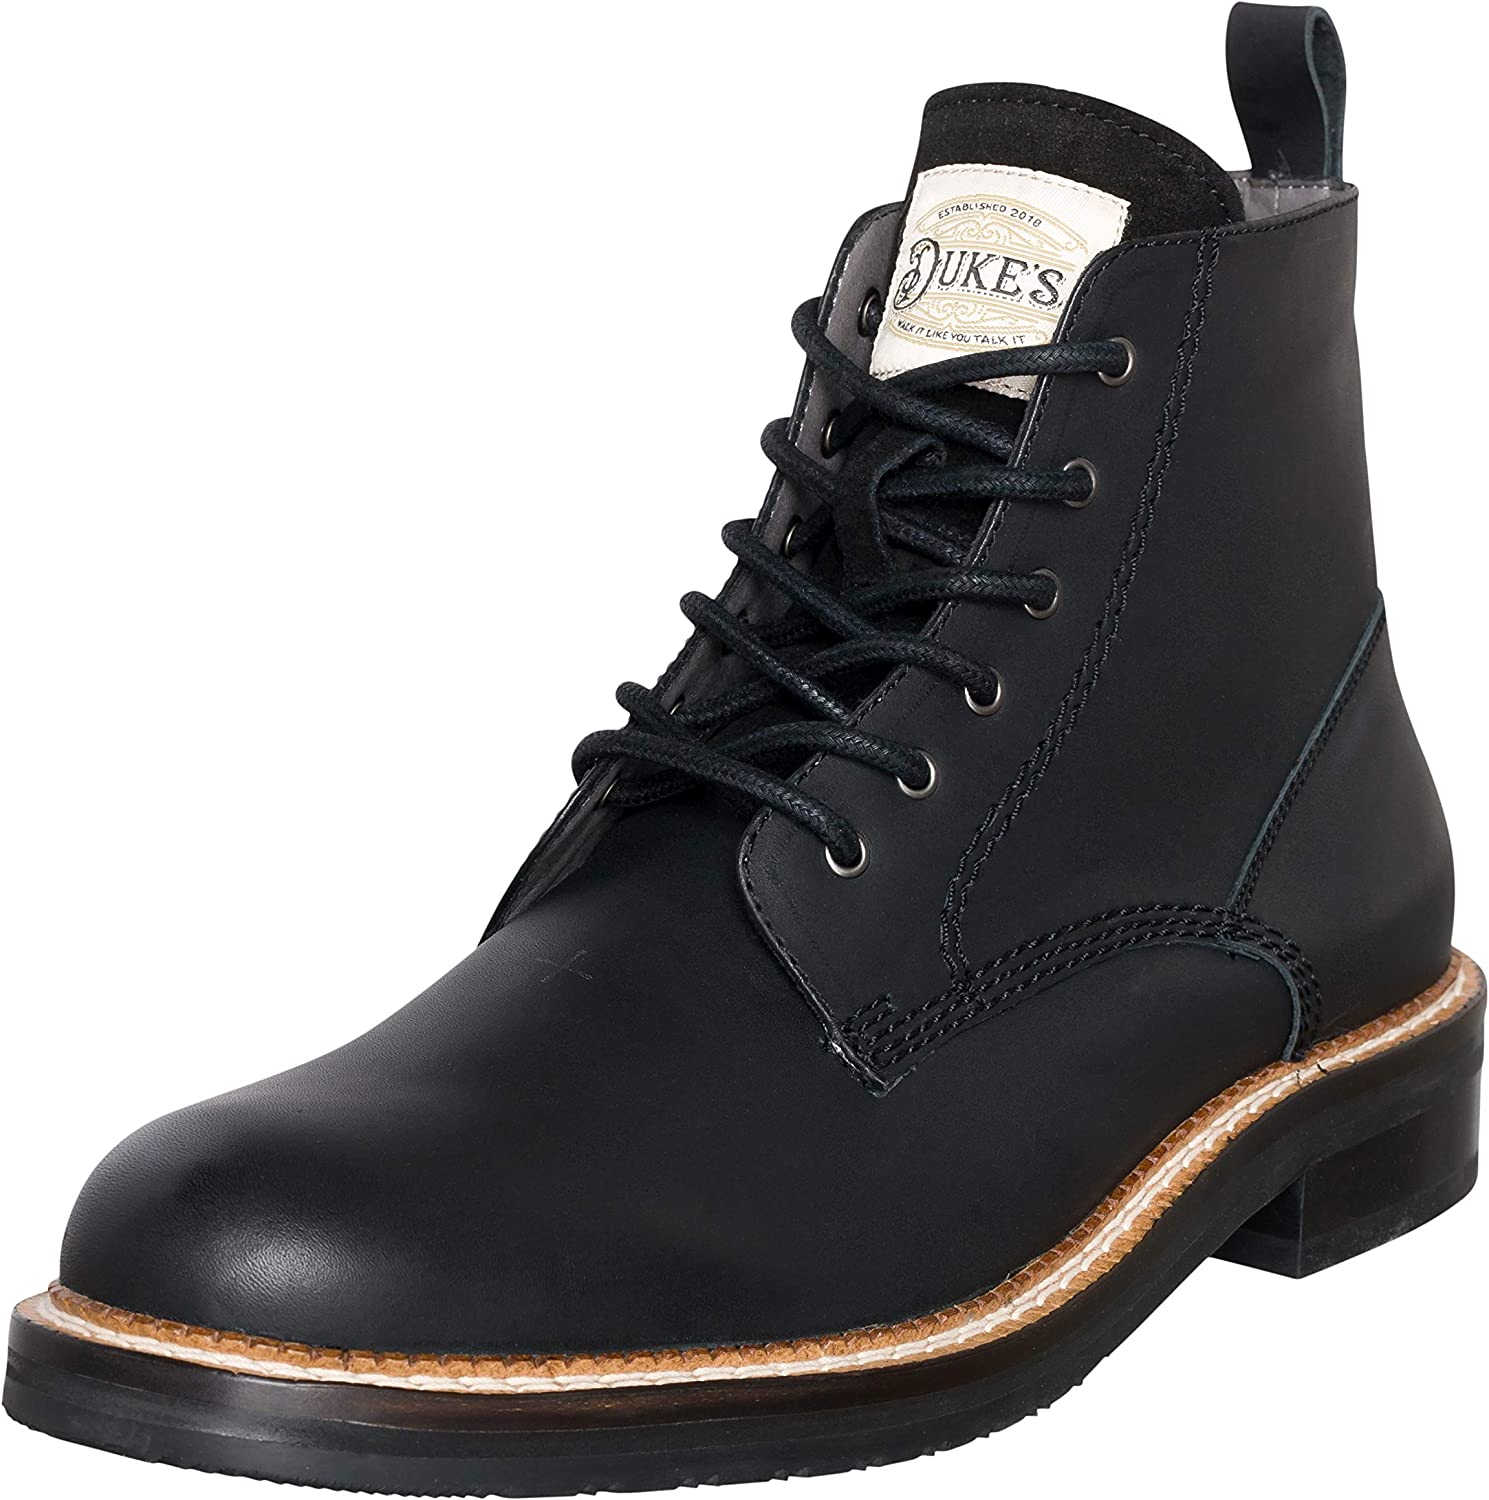 Duke's Mens Boots - Austin Leather Boot with Premium Cushion Insole